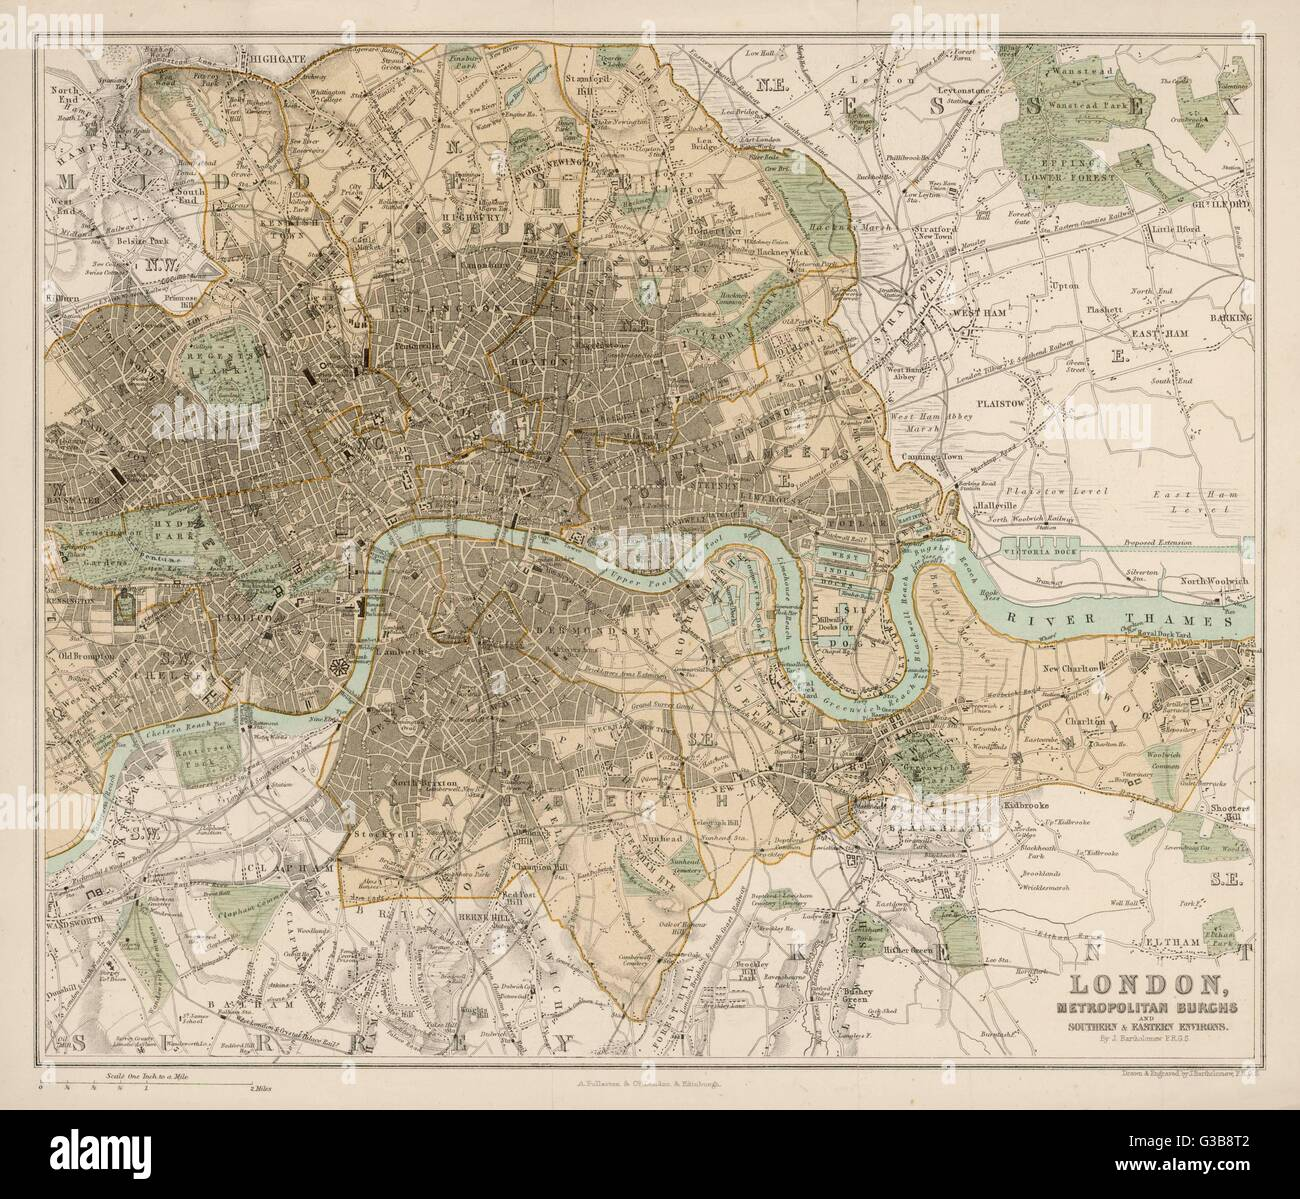 Map of London and its suburbs        Date: 1878 - Stock Image